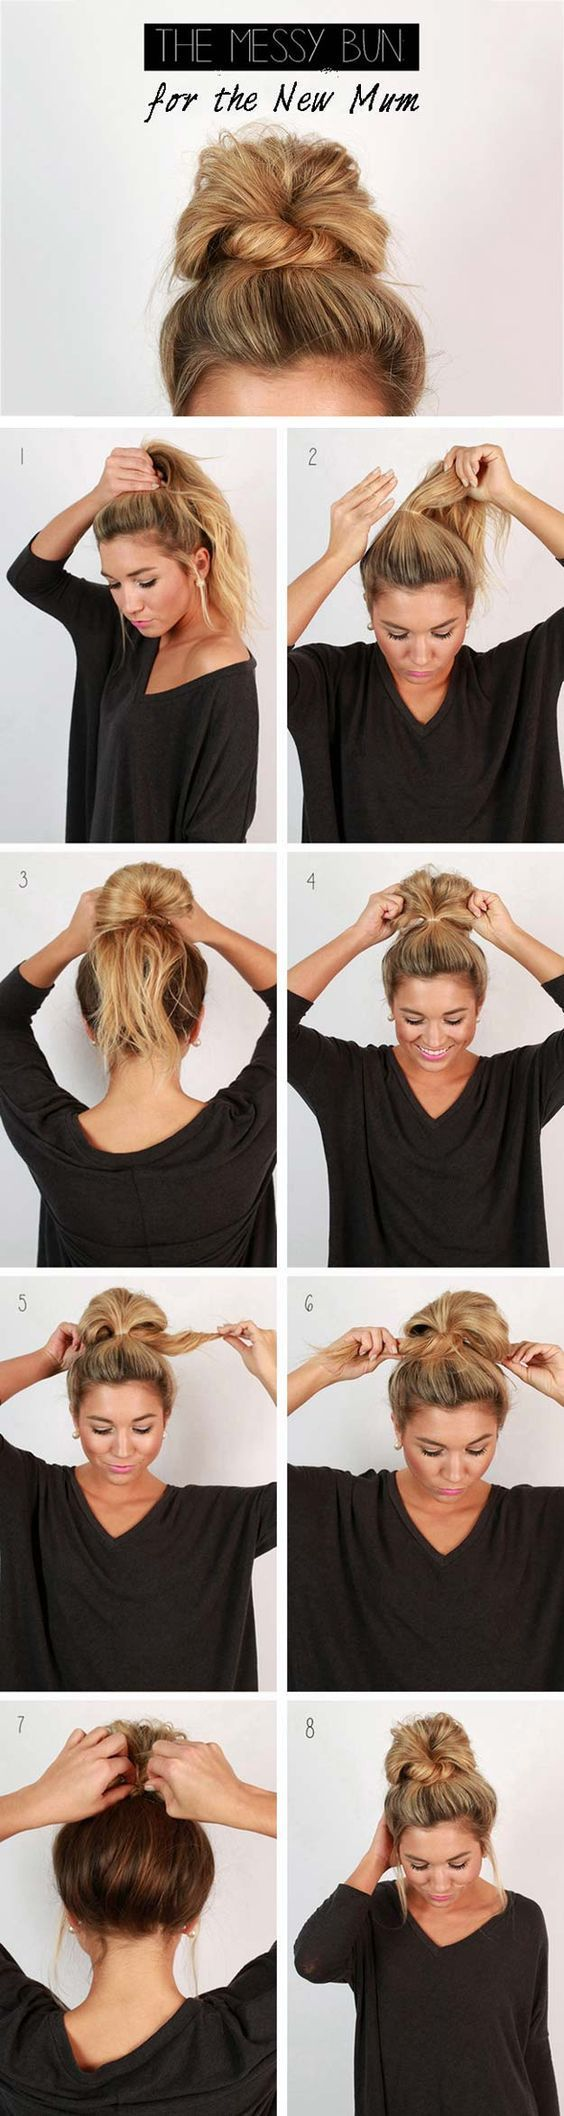 cute u romantic hairstyle ideas for wedding easy diy hairstyles